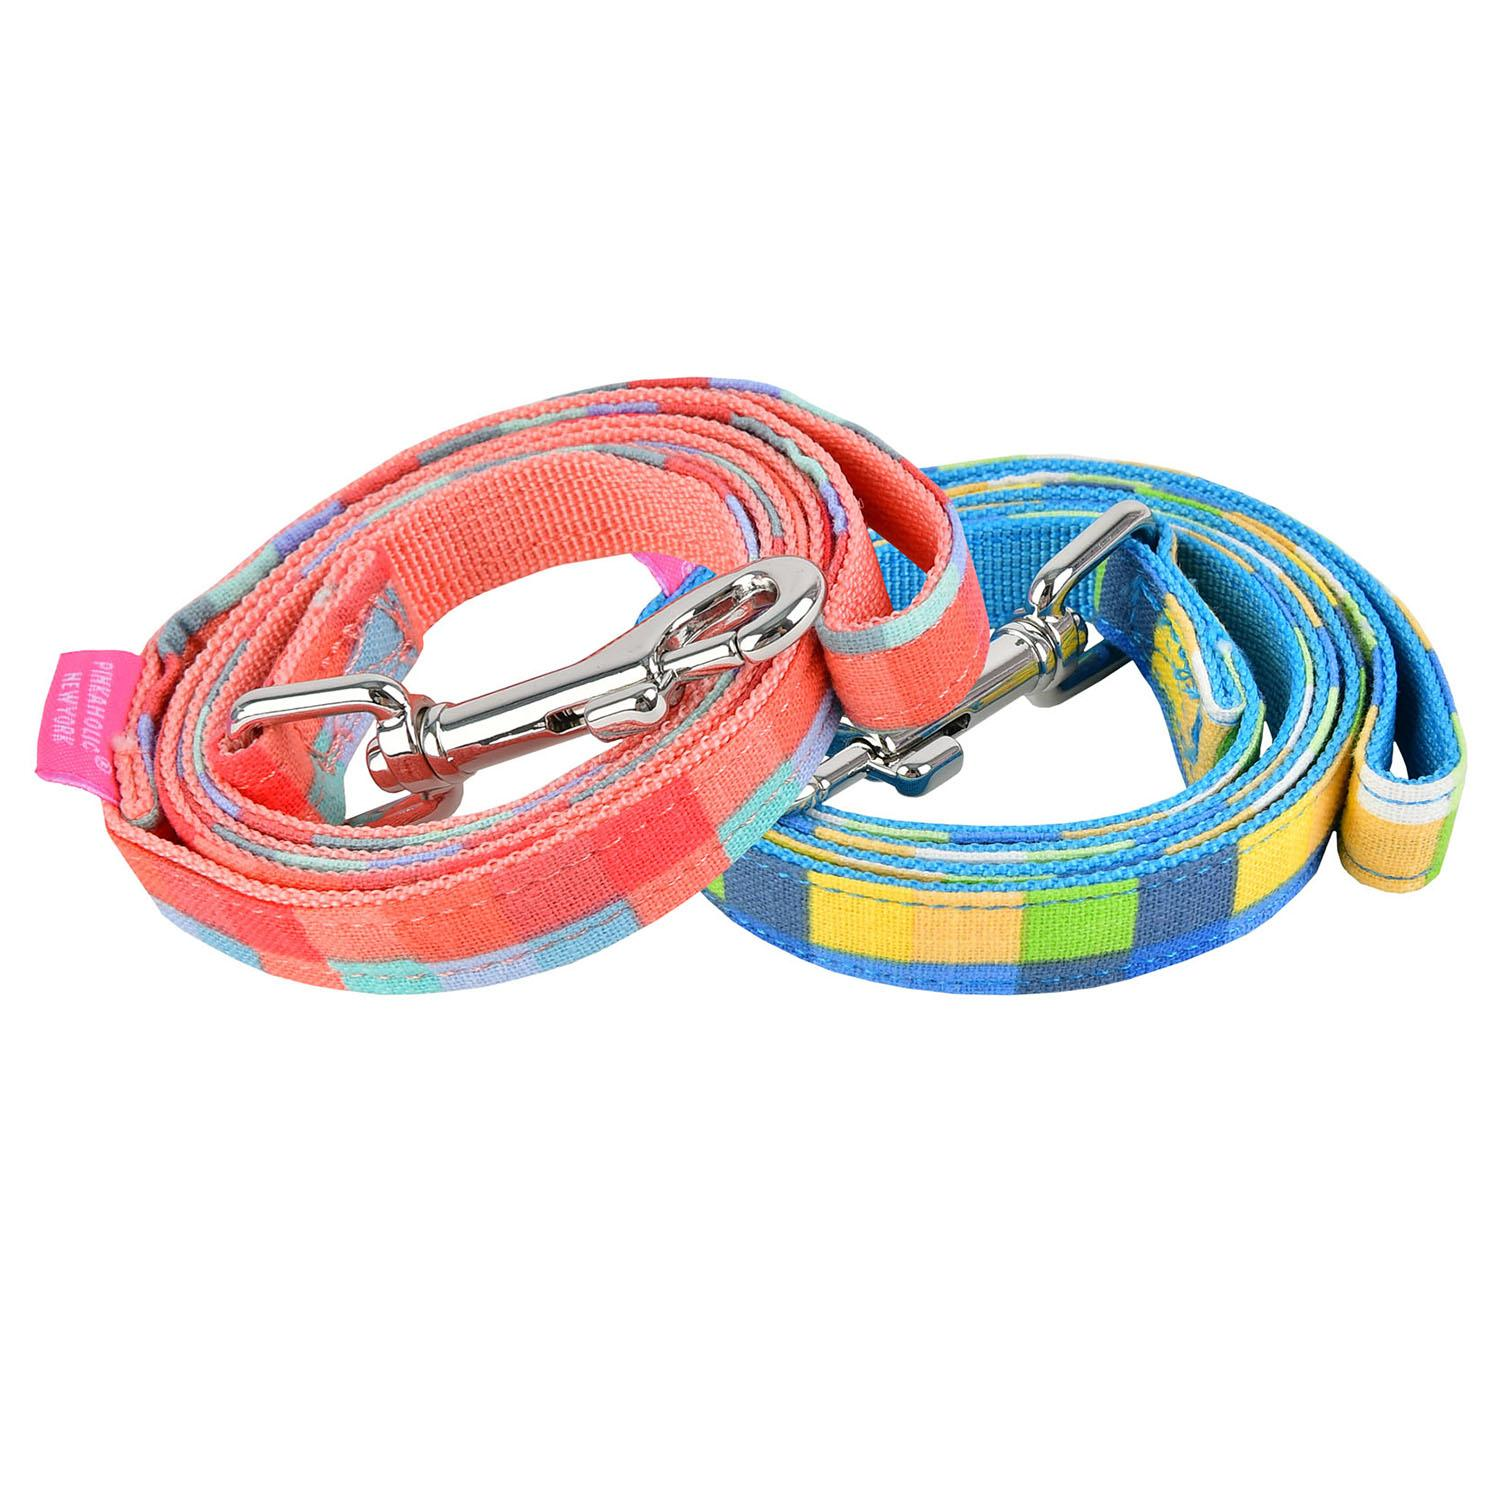 Vivica Dog Leash by Pinkaholic